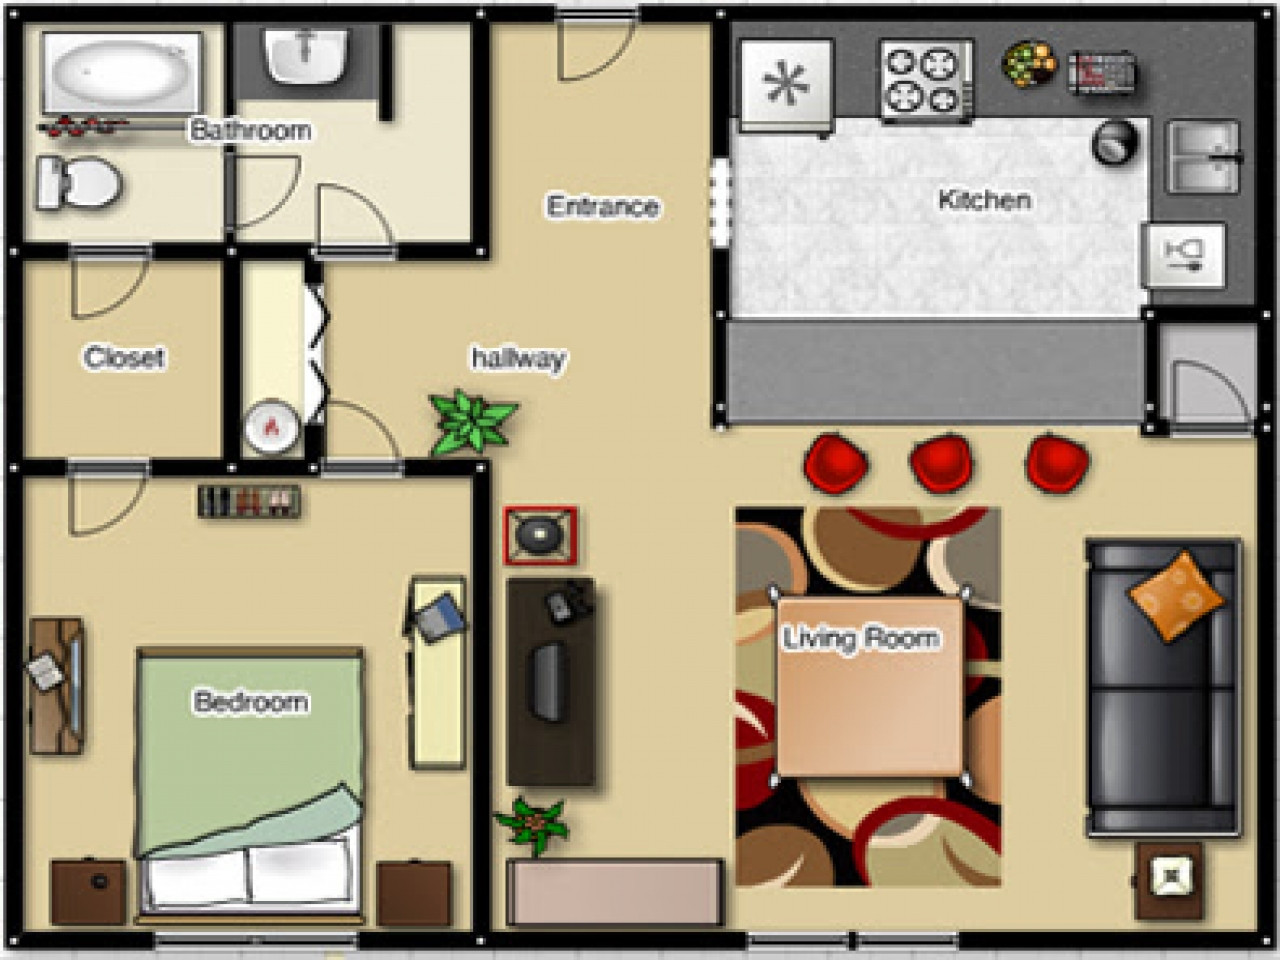 Best ideas about Bedroom Floor Plan . Save or Pin e Bedroom Apartment Floor Plan e Bedroom Apartment Now.